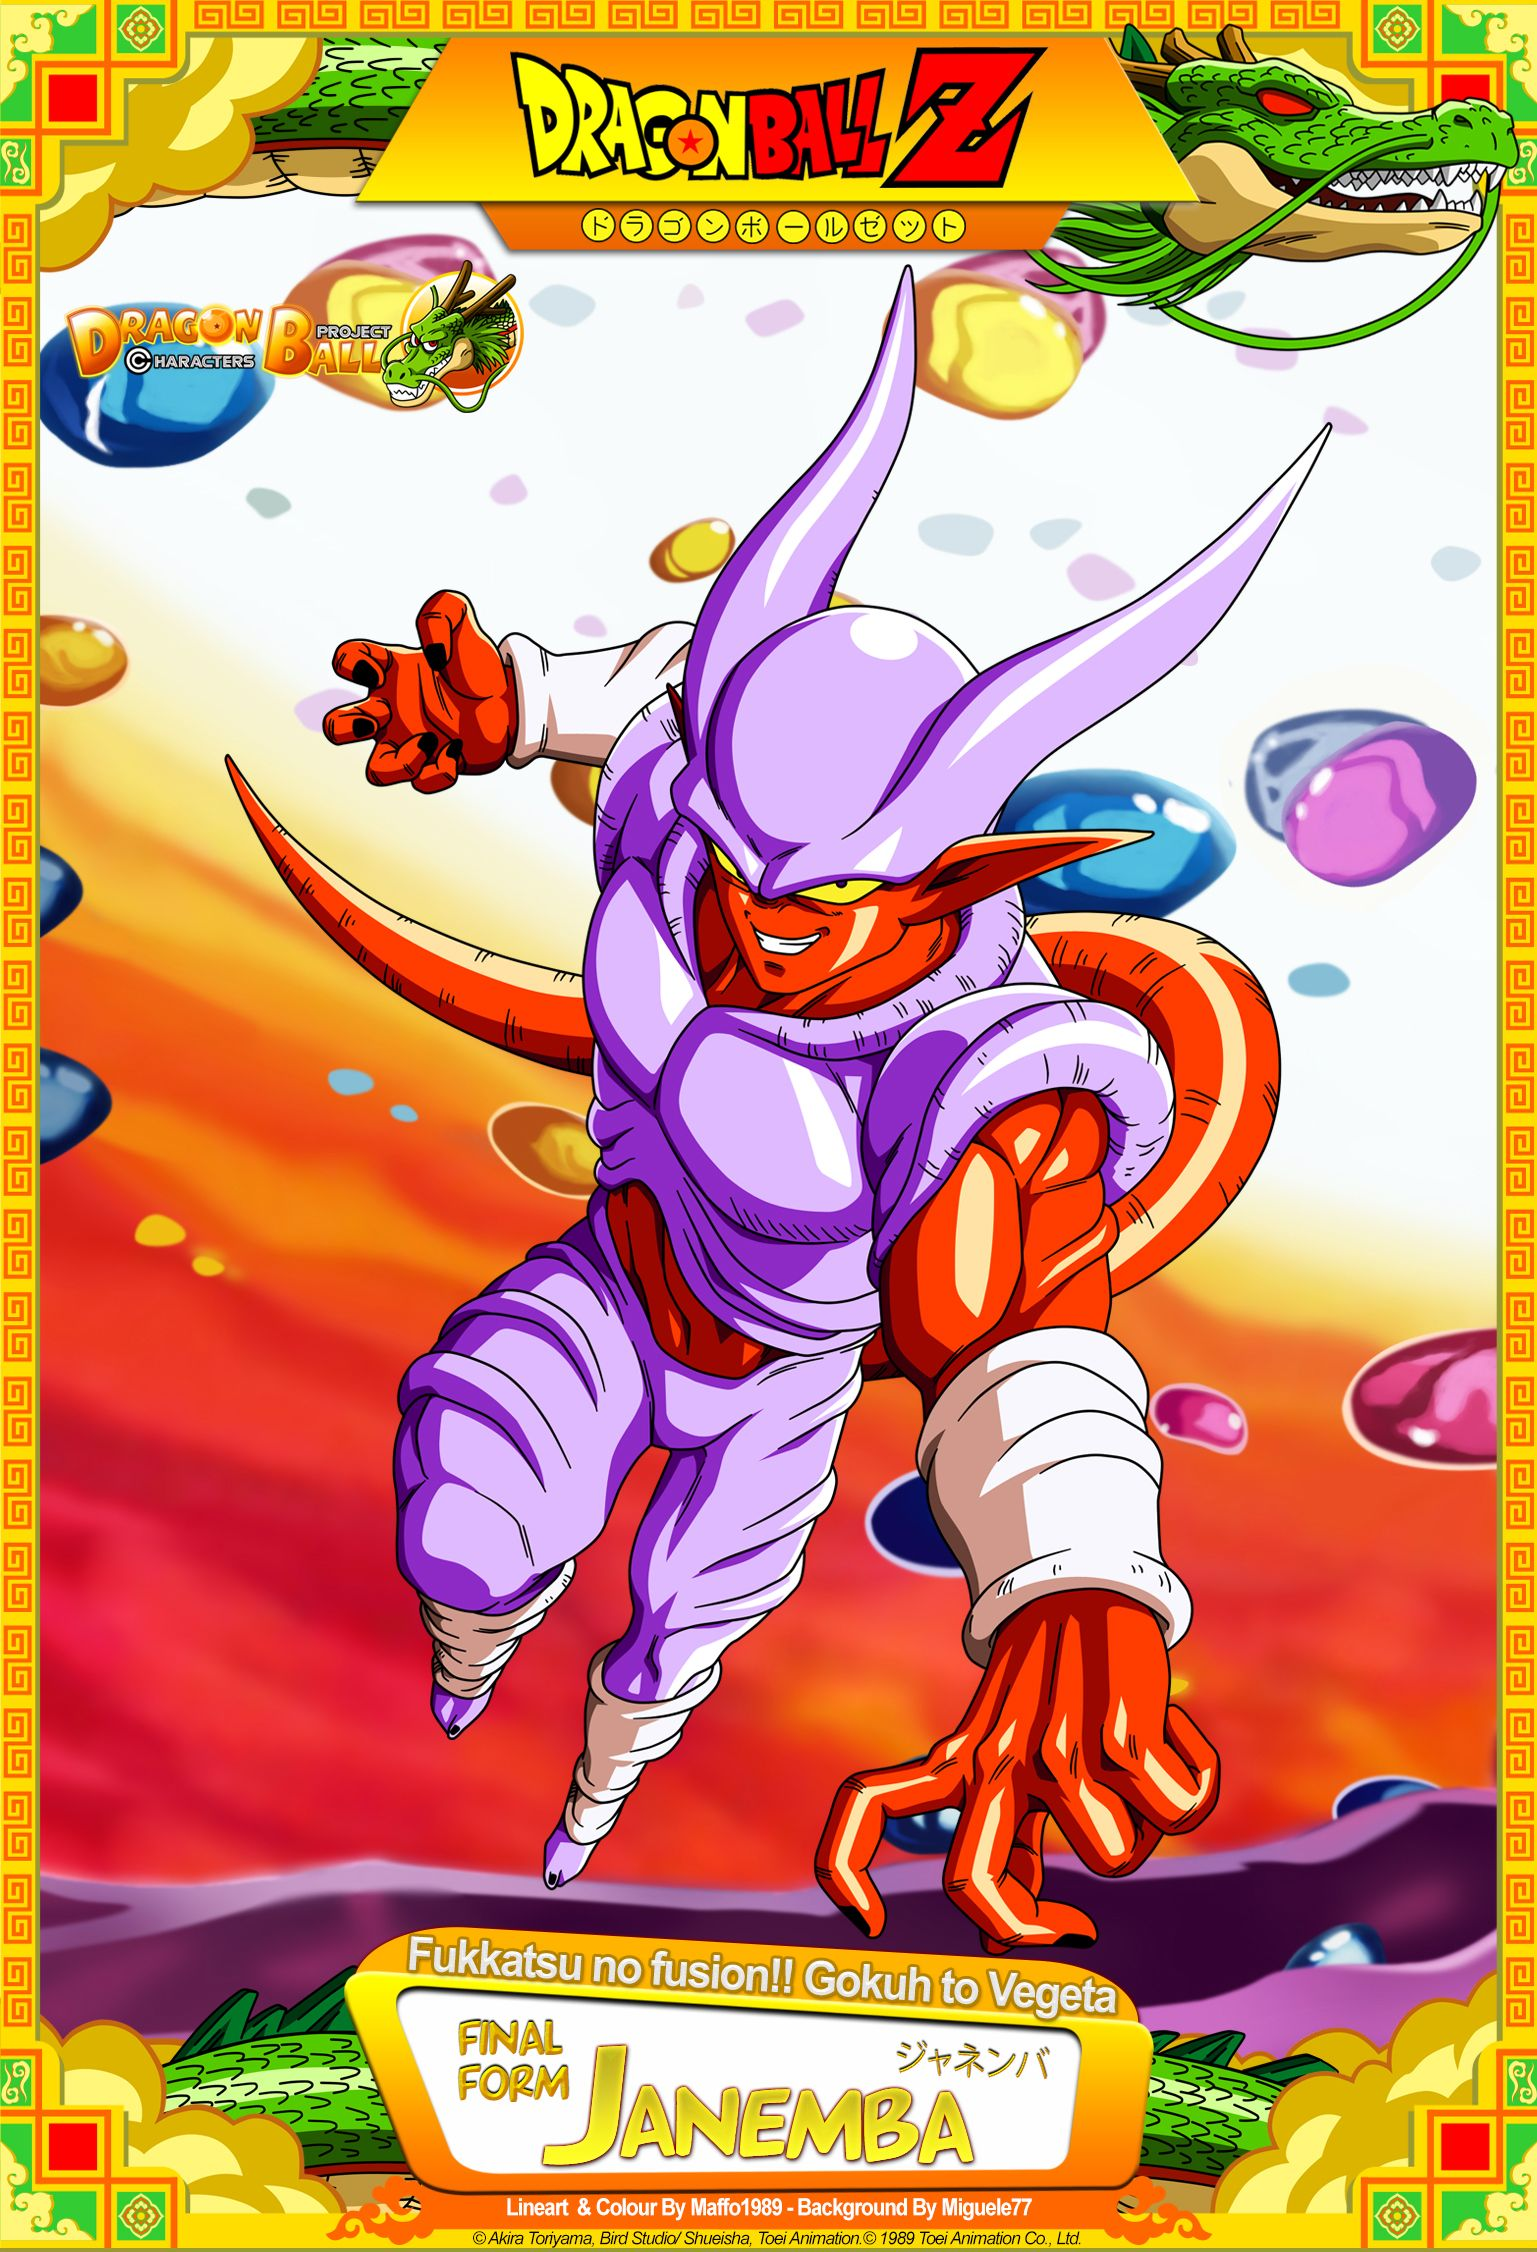 Dragon Ball Z Janemba By Dbcproject On Deviantart Anime Dragon Ball Super Dragon Ball Z Dragon Ball Art